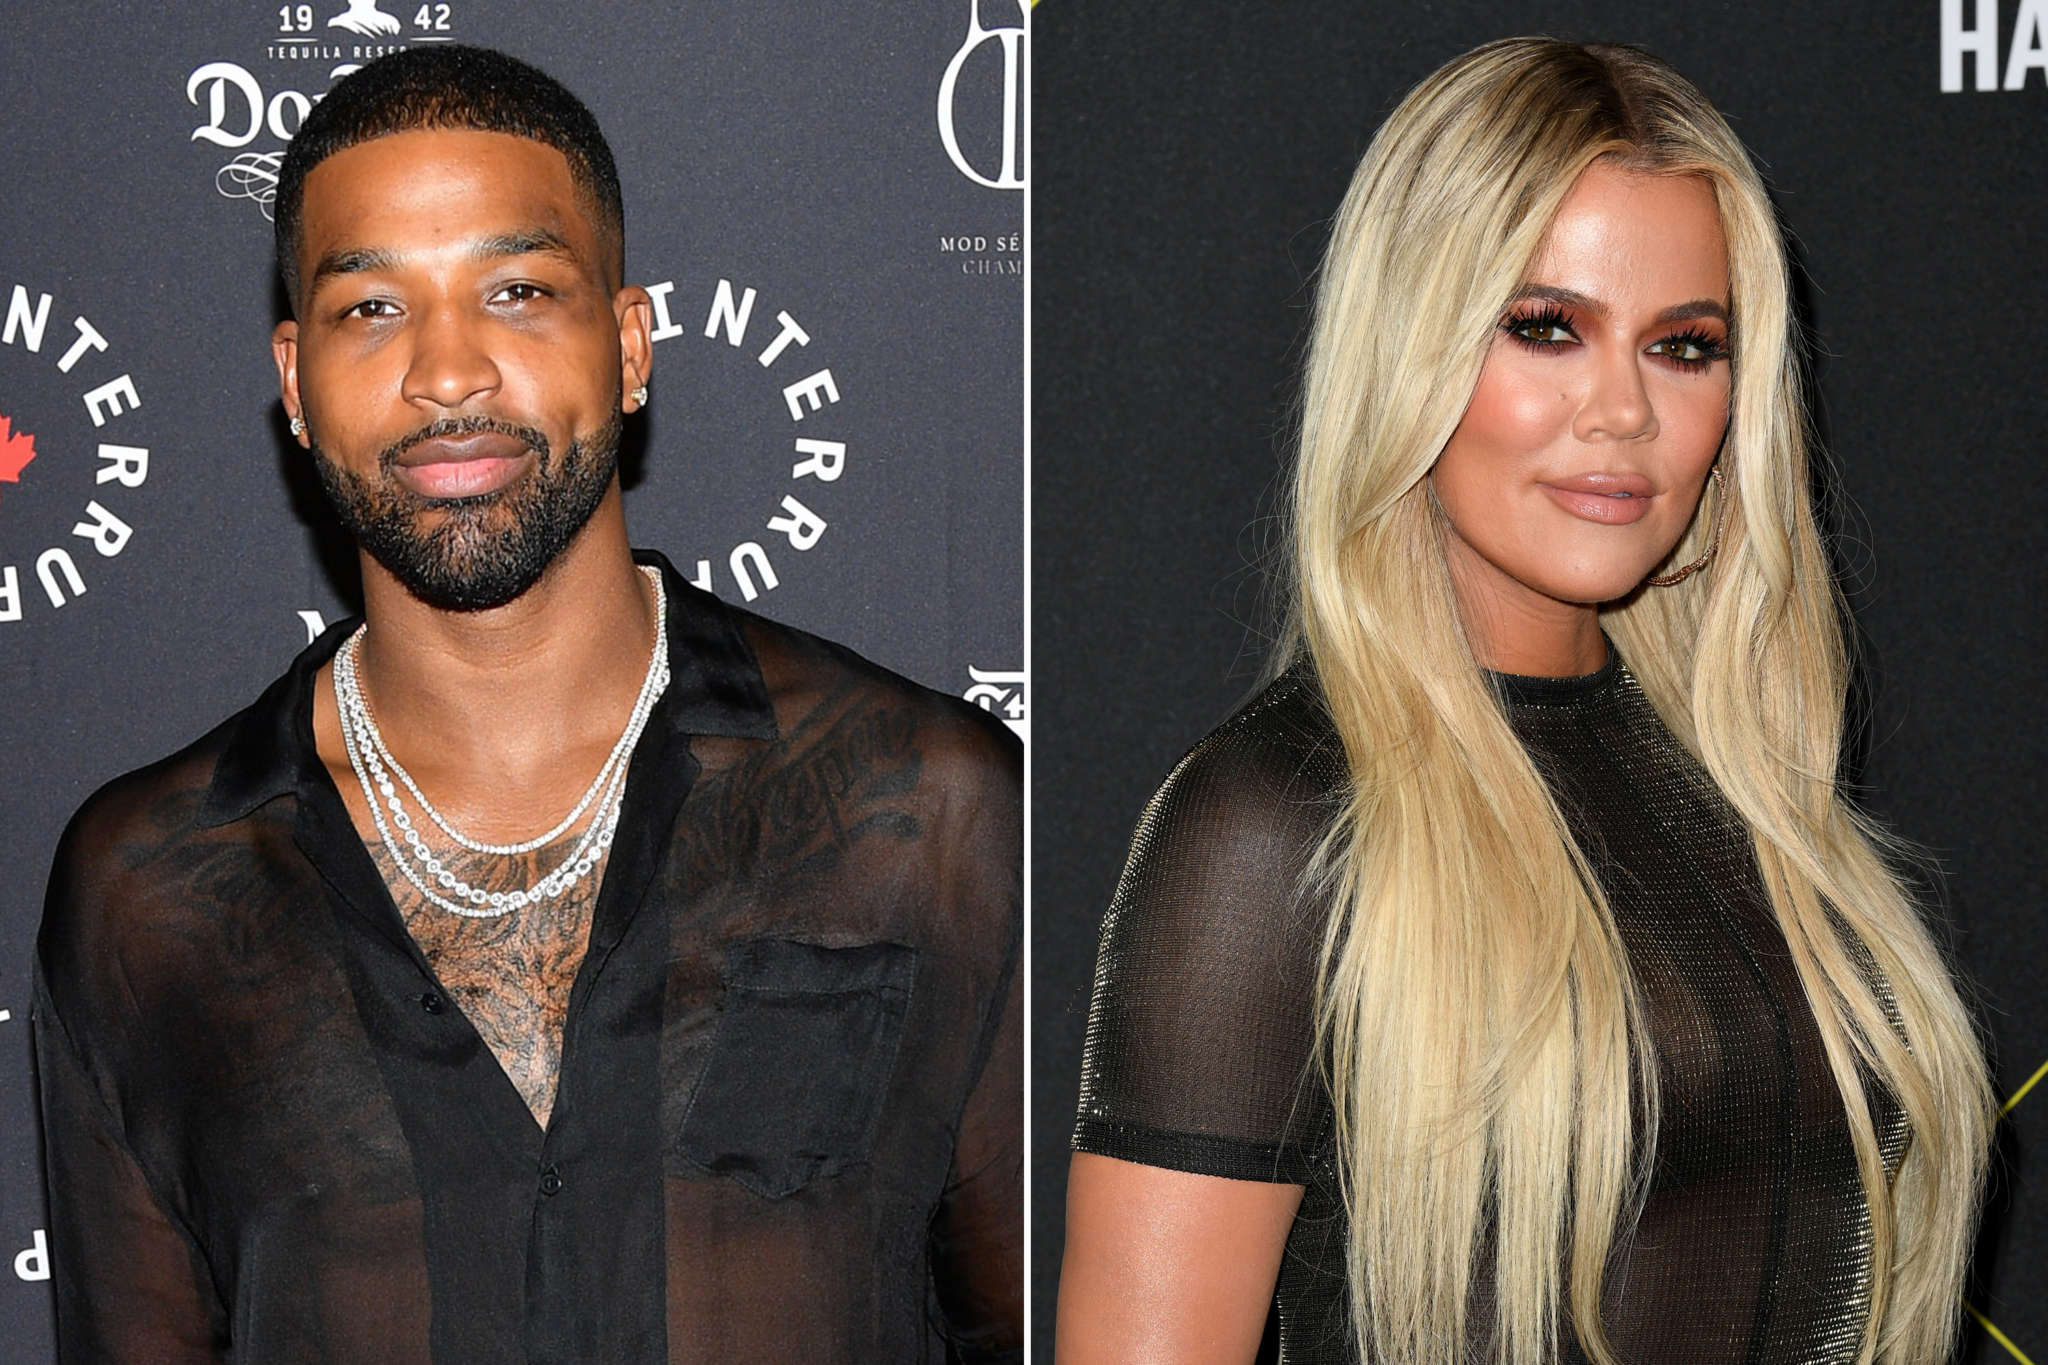 Khloe Kardashian & Tristan Thompson Are in a Great Co-Parenting Space